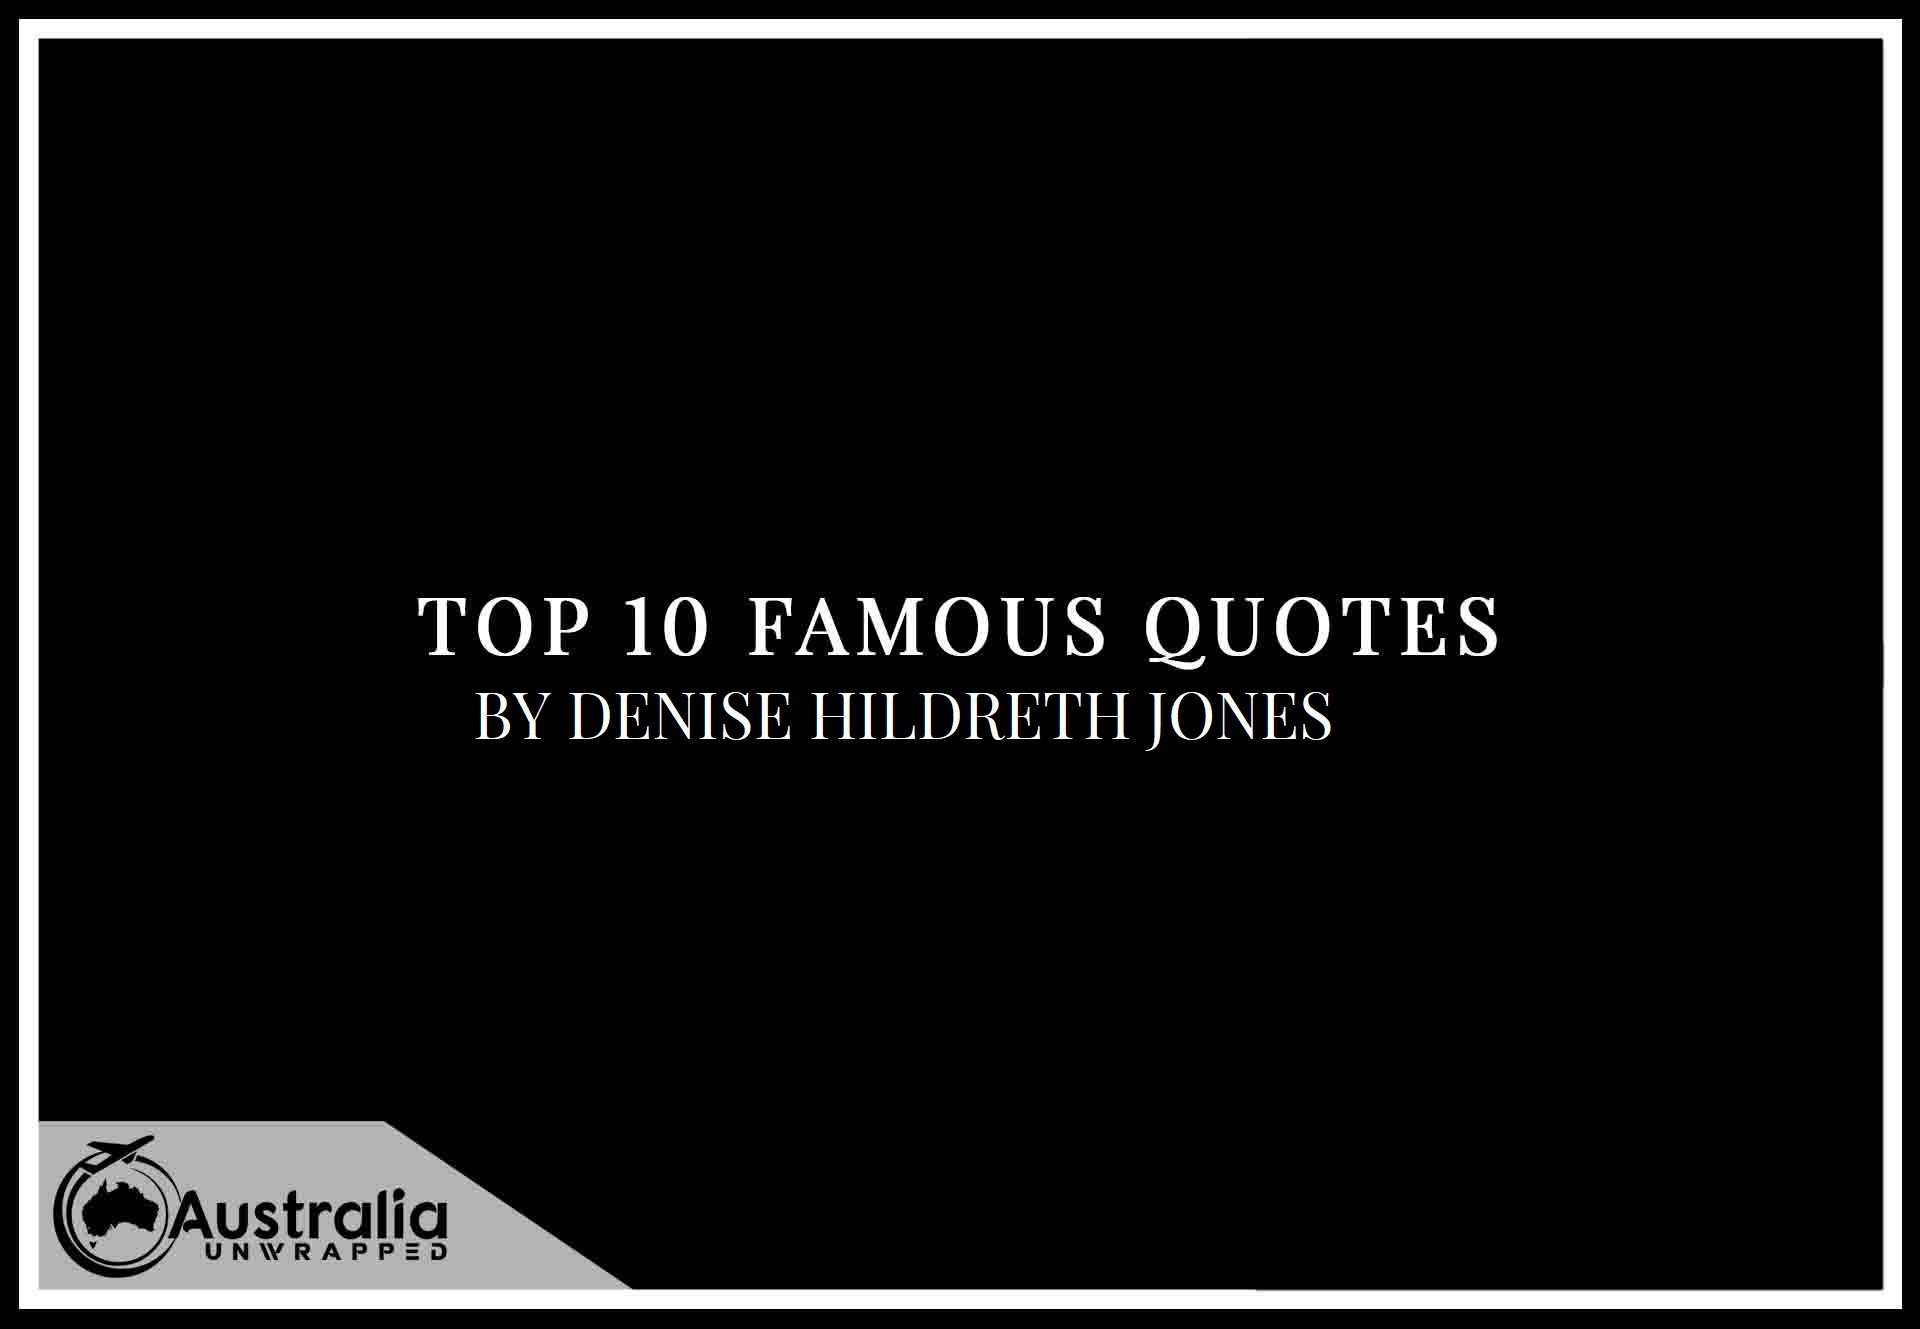 Top 10 Famous Quotes by Author Denise Hildreth